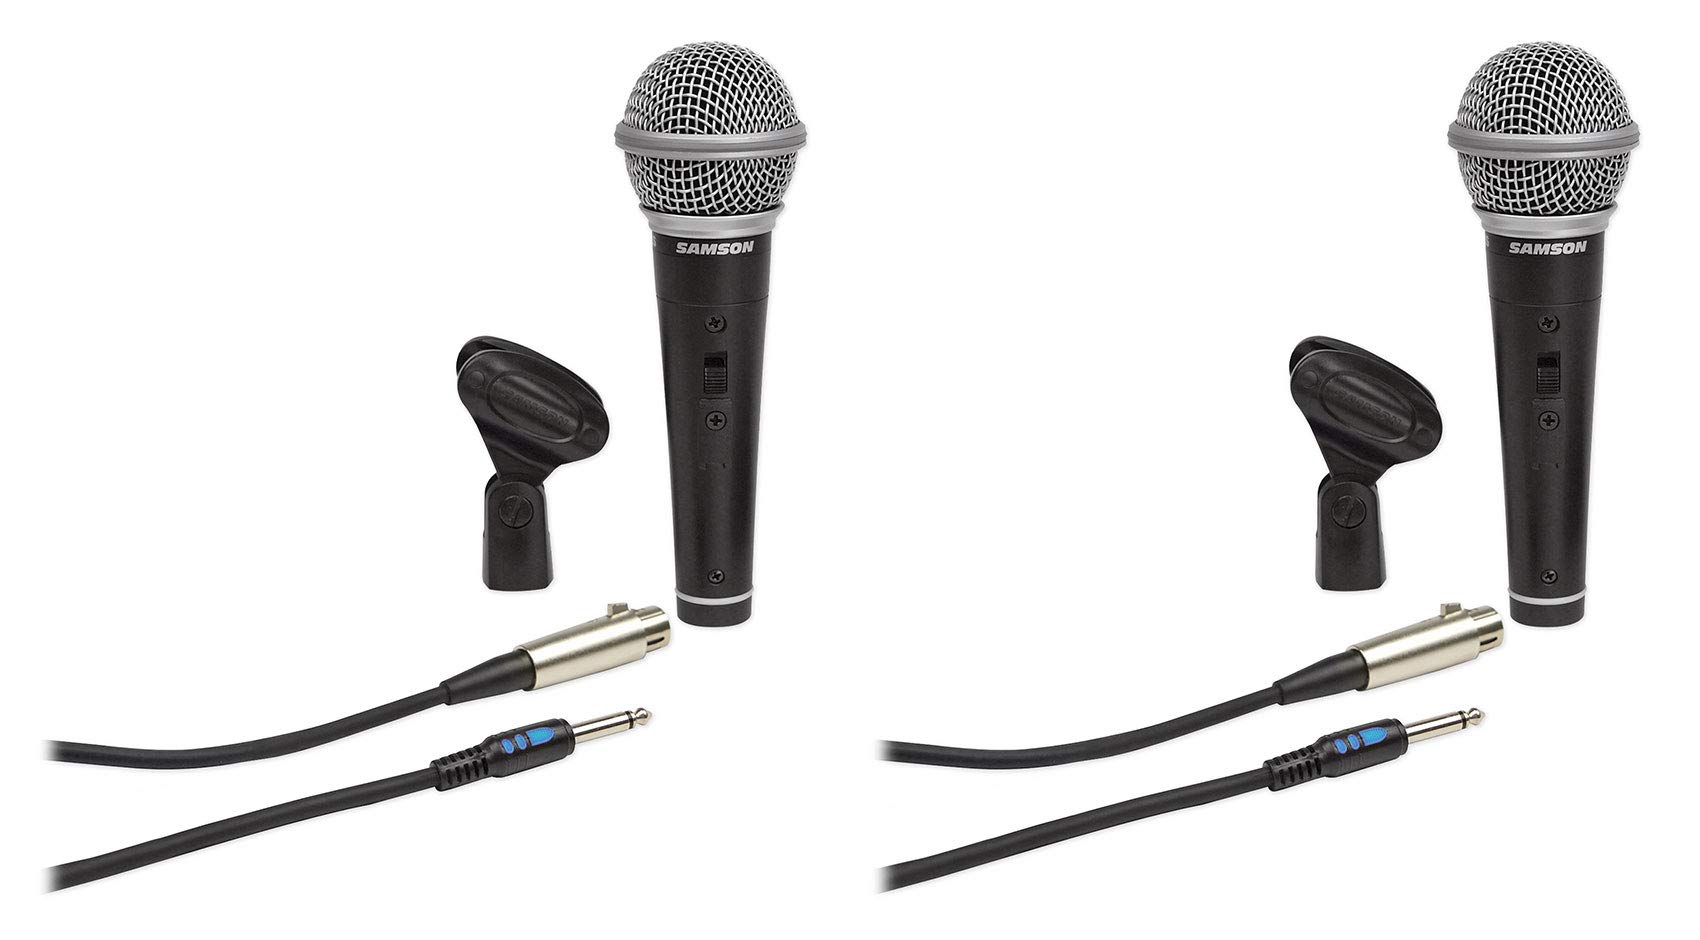 (2) Samson R21S Dynamic Handheld Microphones+Mic Clips+Cables+3.5mm adapters by Samson Technologies